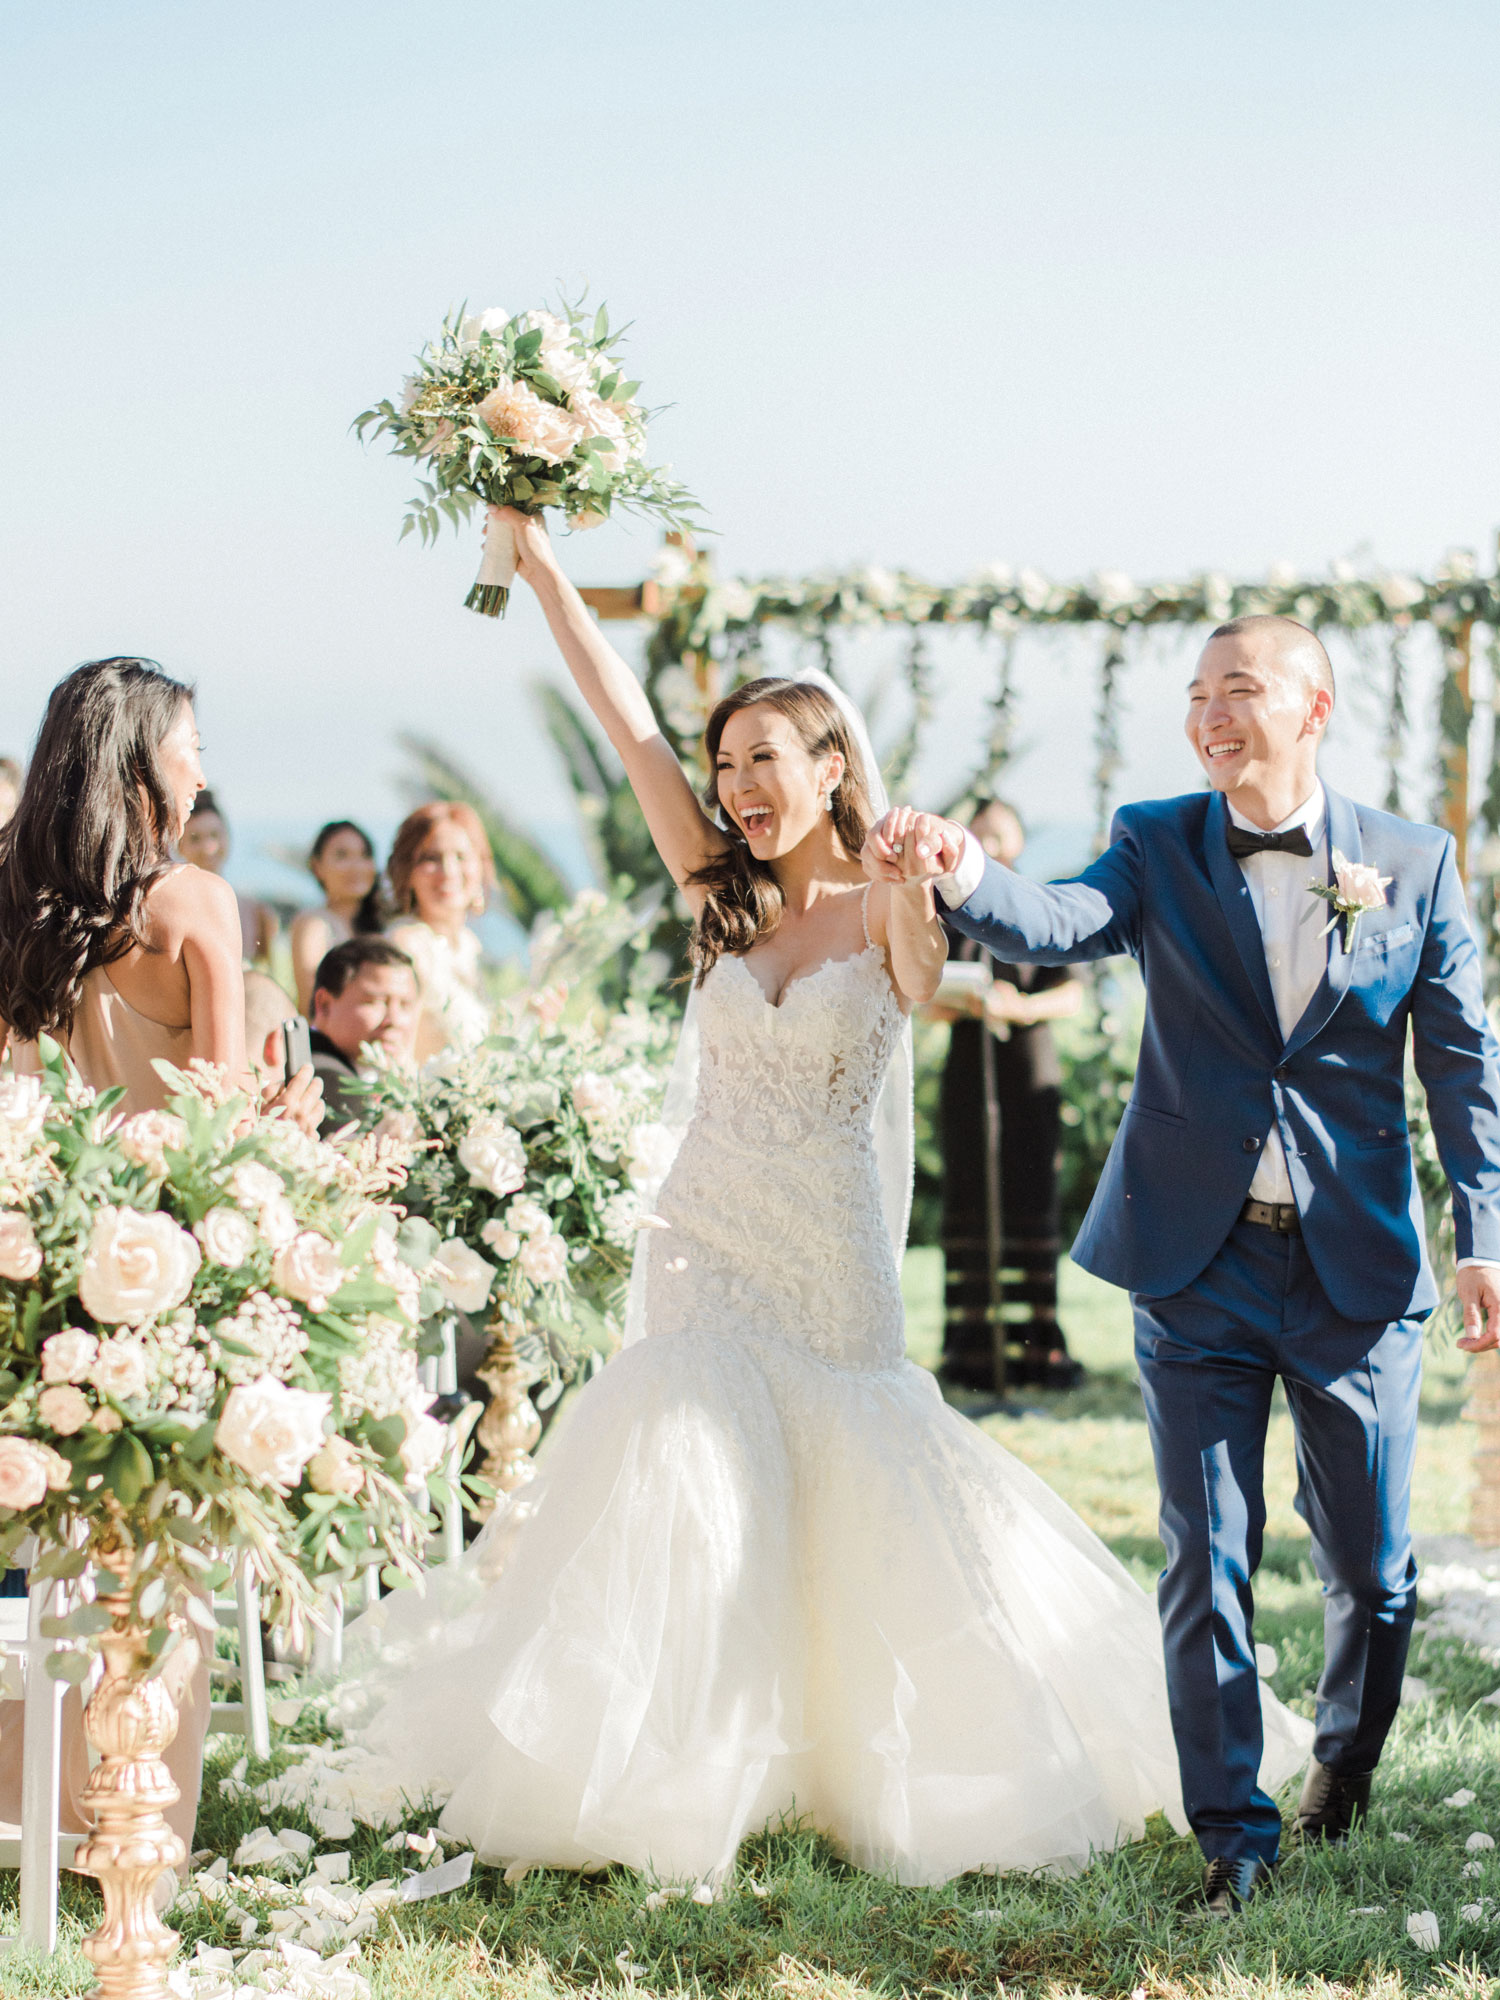 Inside Weddings Summer 2018 issue preview bride and groom at outdoor wedding ceremony